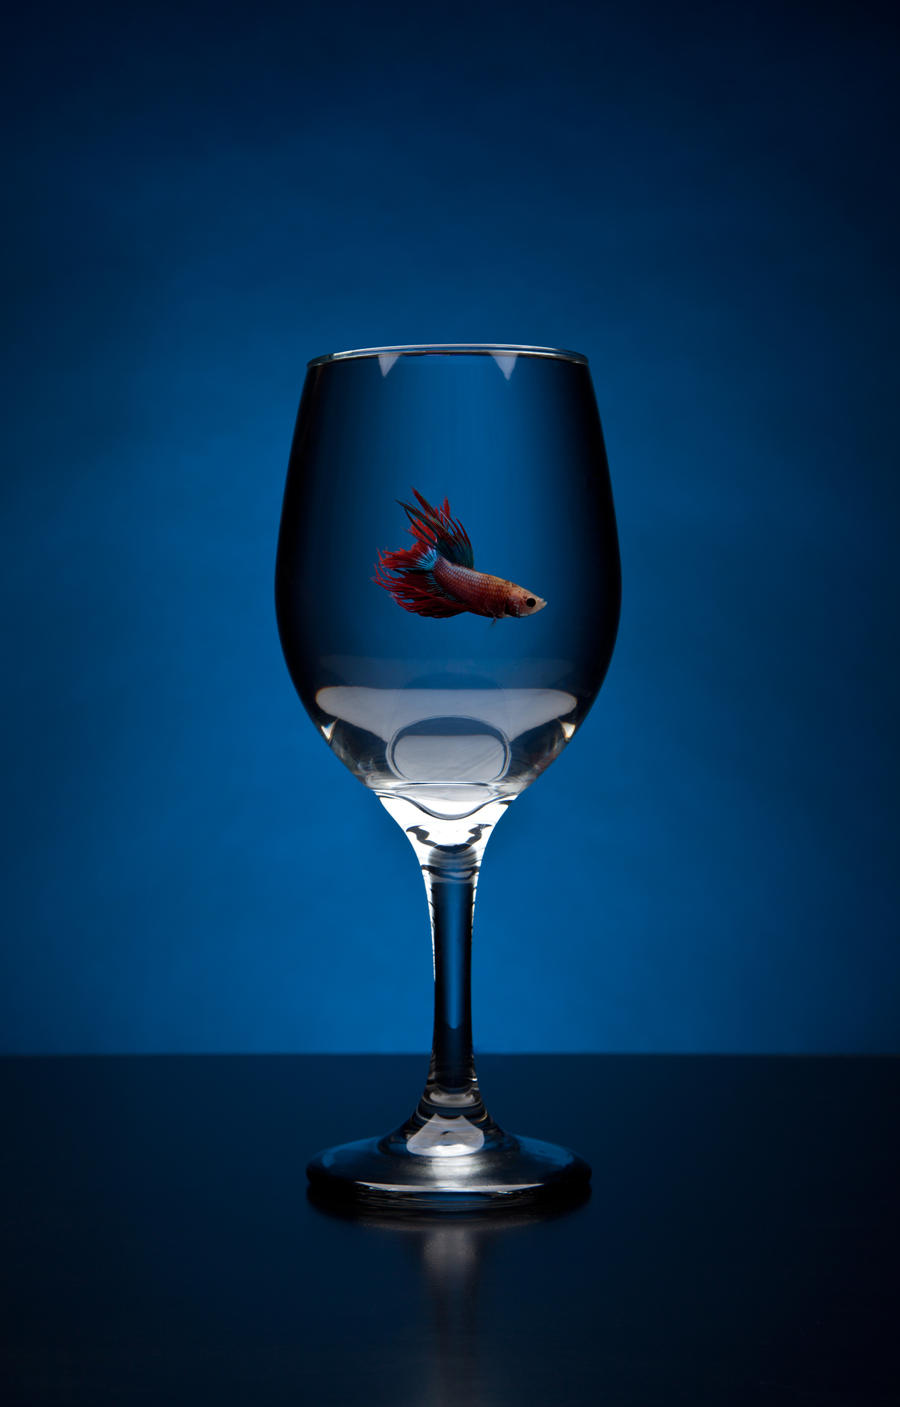 Betta wine glass by len corcino on deviantart for Wine with fish